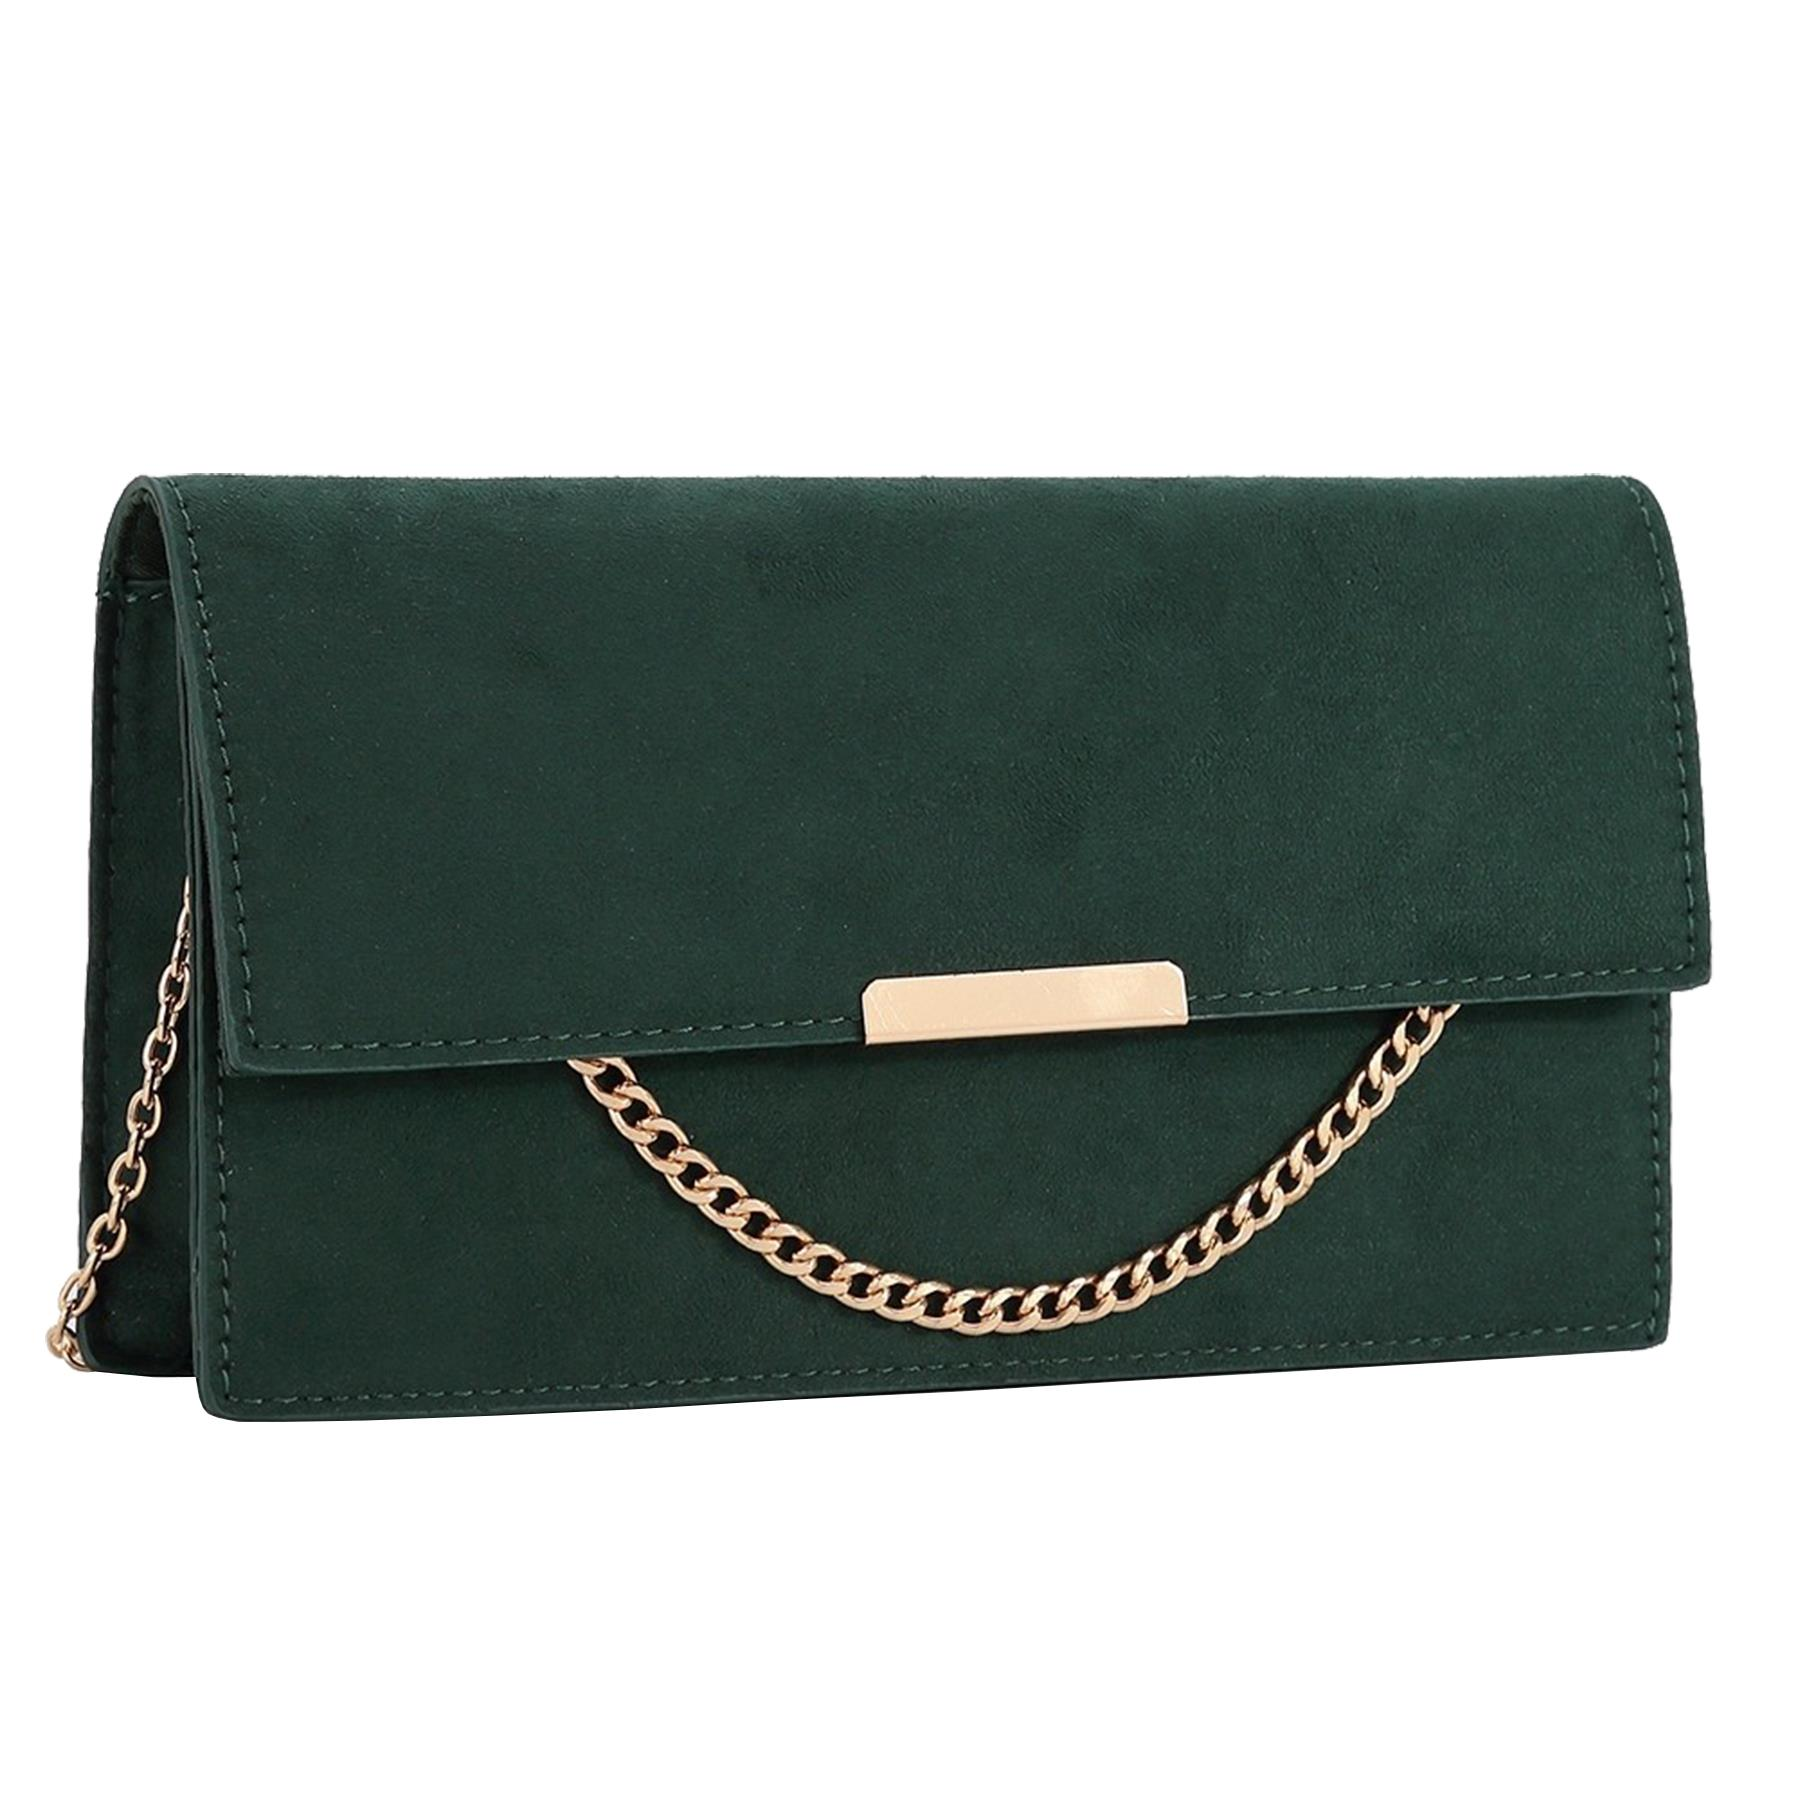 New-Synthetic-Suede-Metallic-Trim-Chain-Detail-Evening-Classic-Clutch-Bag thumbnail 6